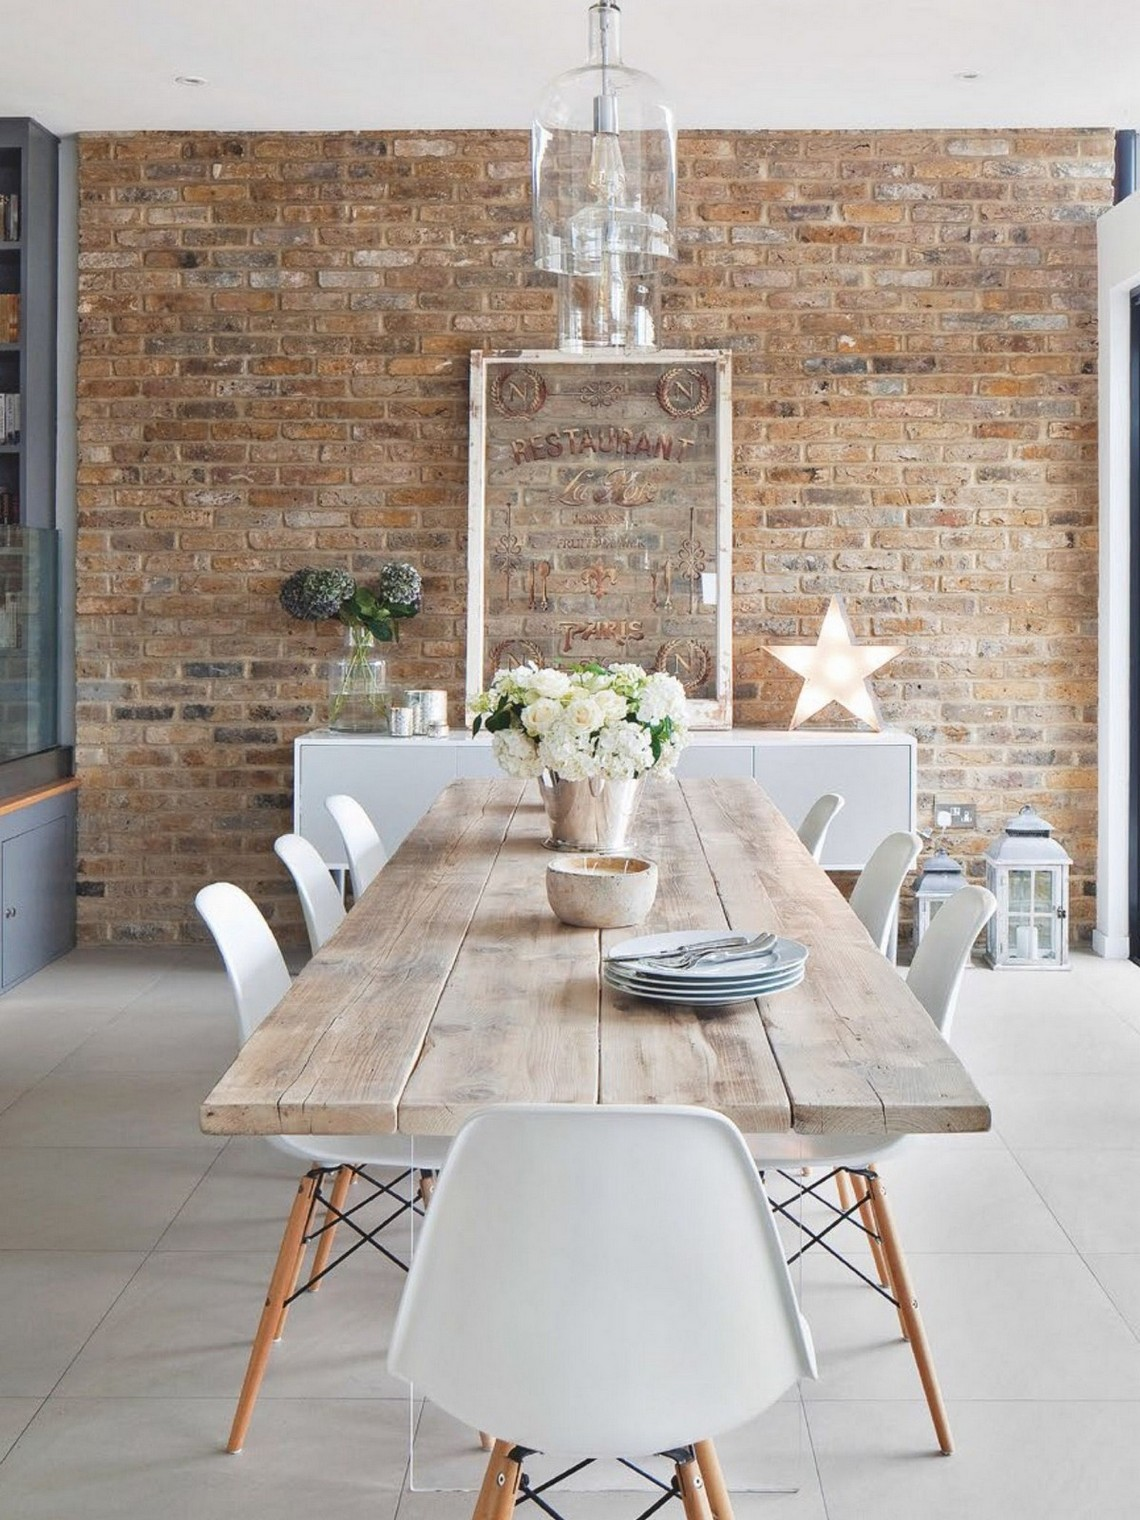 Modern Dining Room Inspirations To Look Out For In 2019 modern dining room Modern Dining Room Inspirations To Look Out For In 2019 5 2